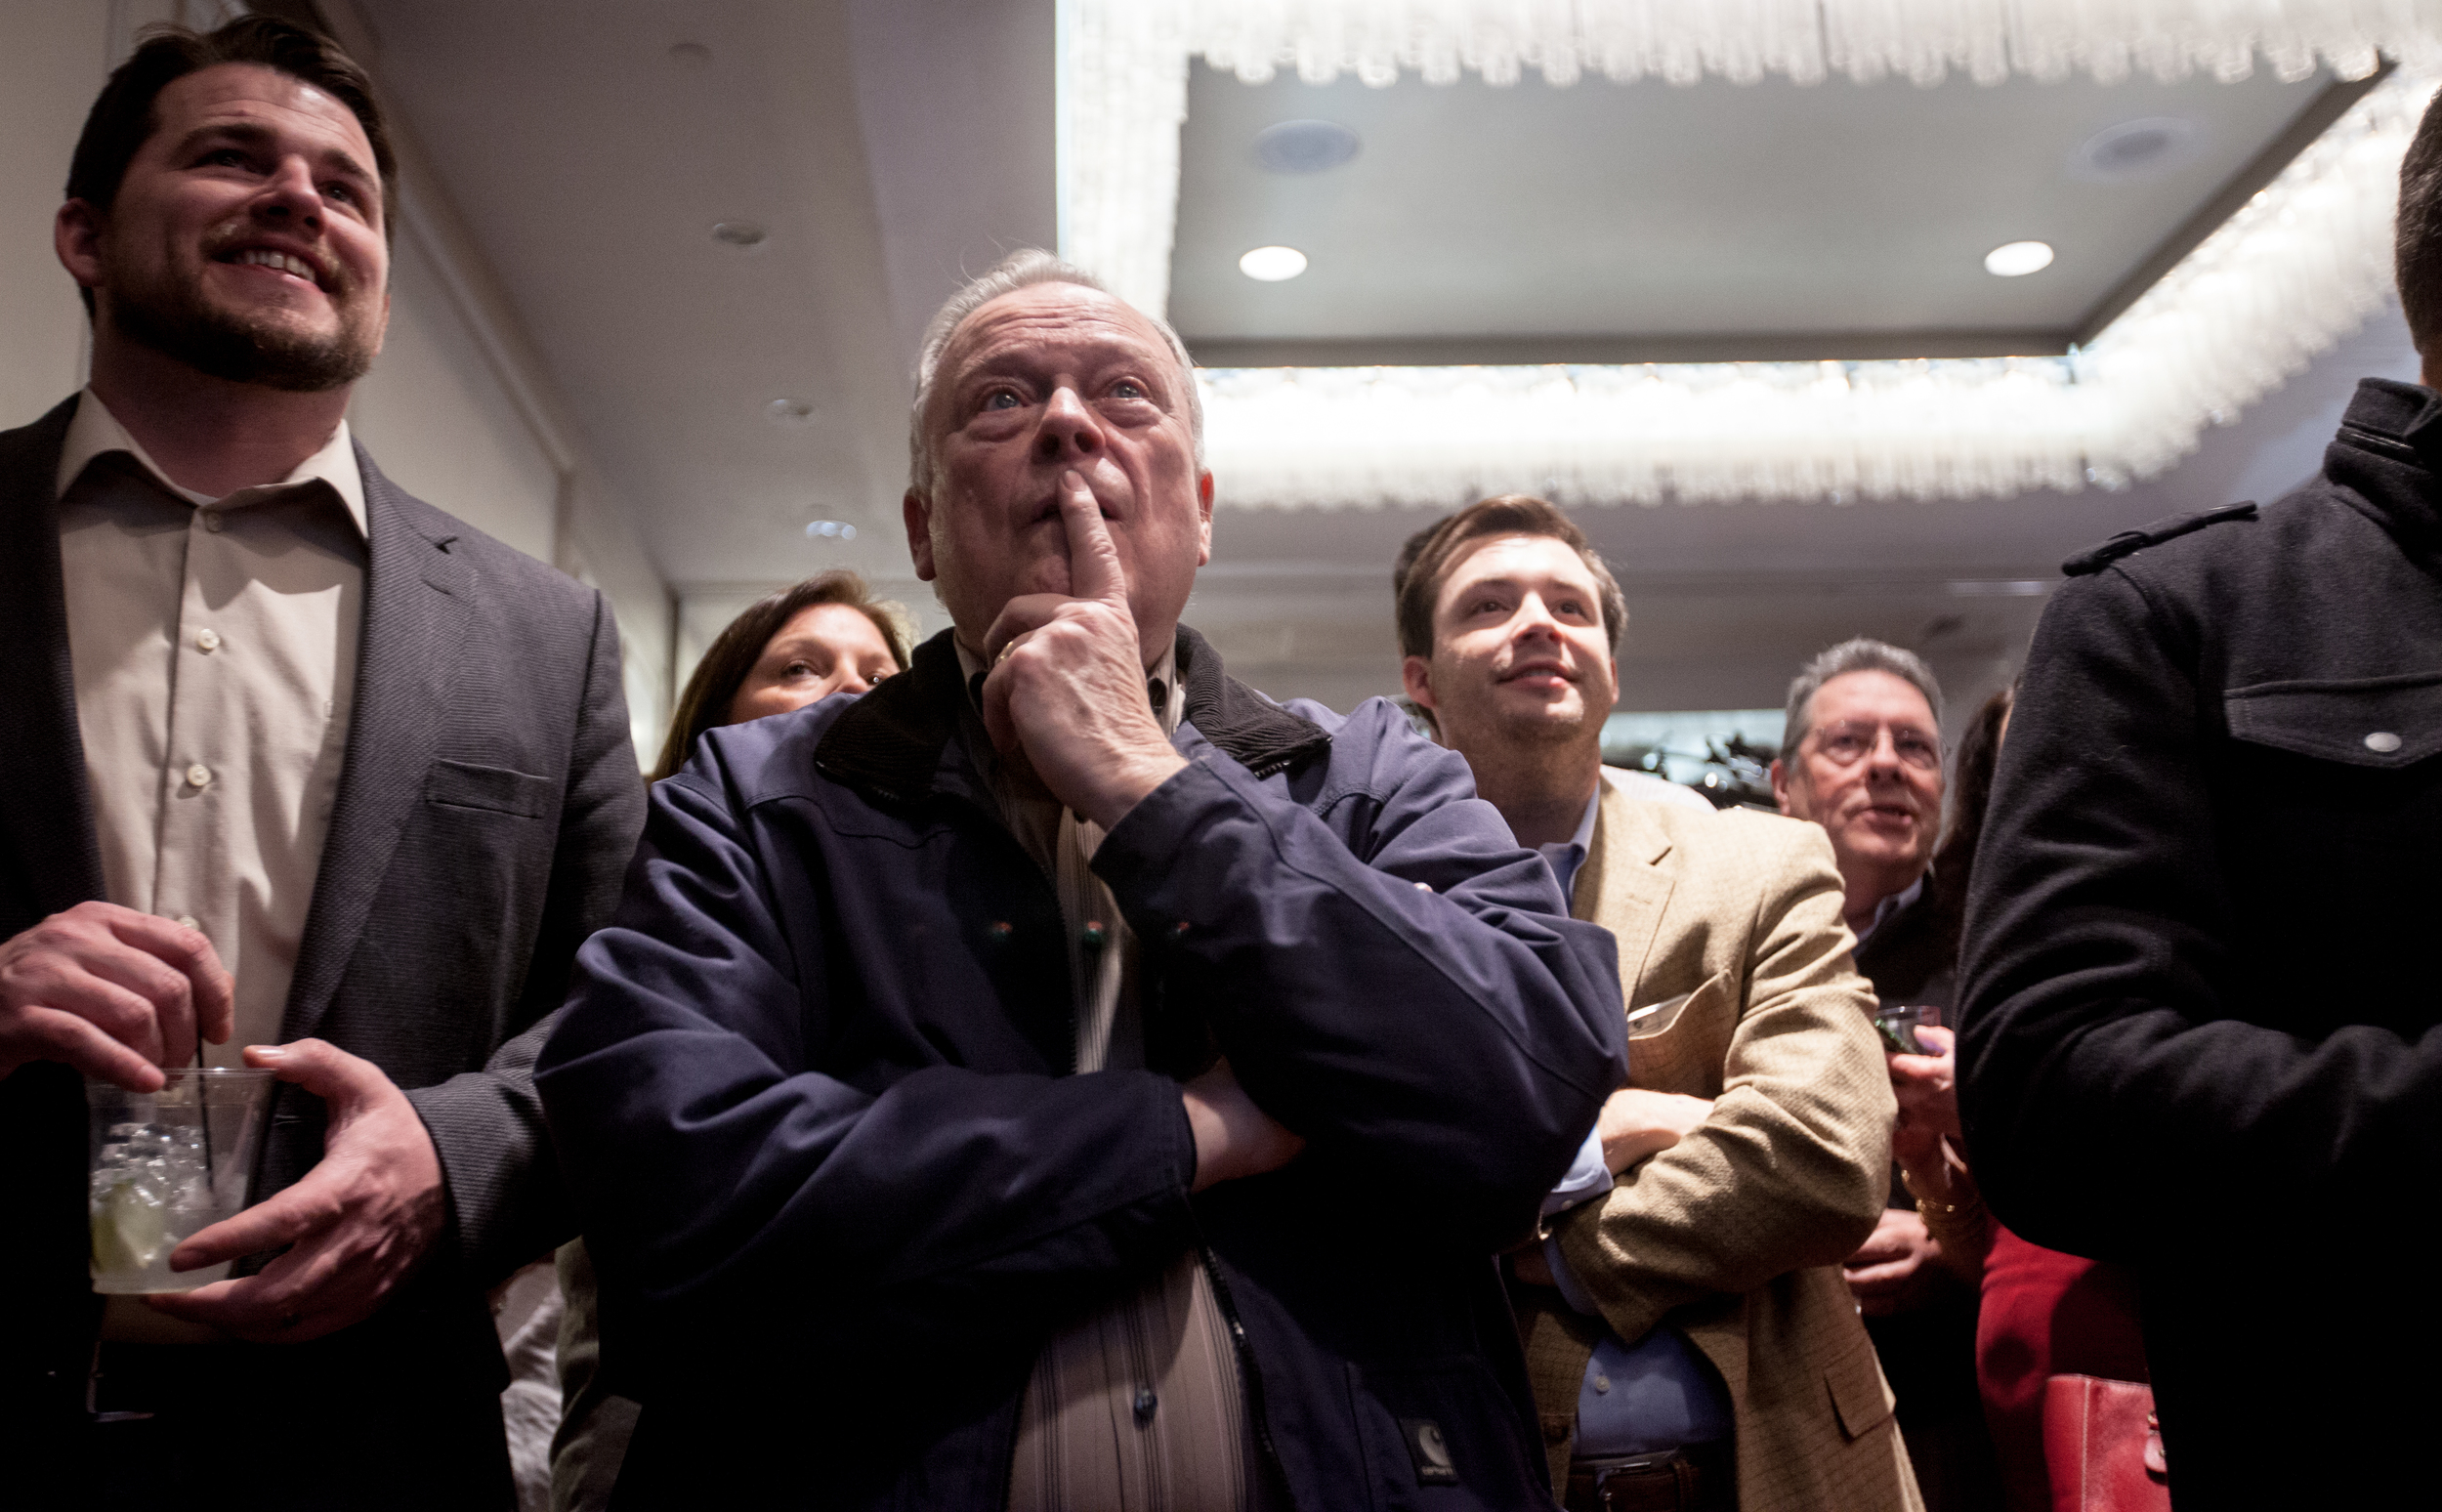 Manchester, NH, Feb. 9, 2016 - Supporters watch Bernie Sanders' victory speech on a television at Marco Rubio's New Hampshire Primary watch party at the Radisson Hotel. Photo by Alexandra Wimley